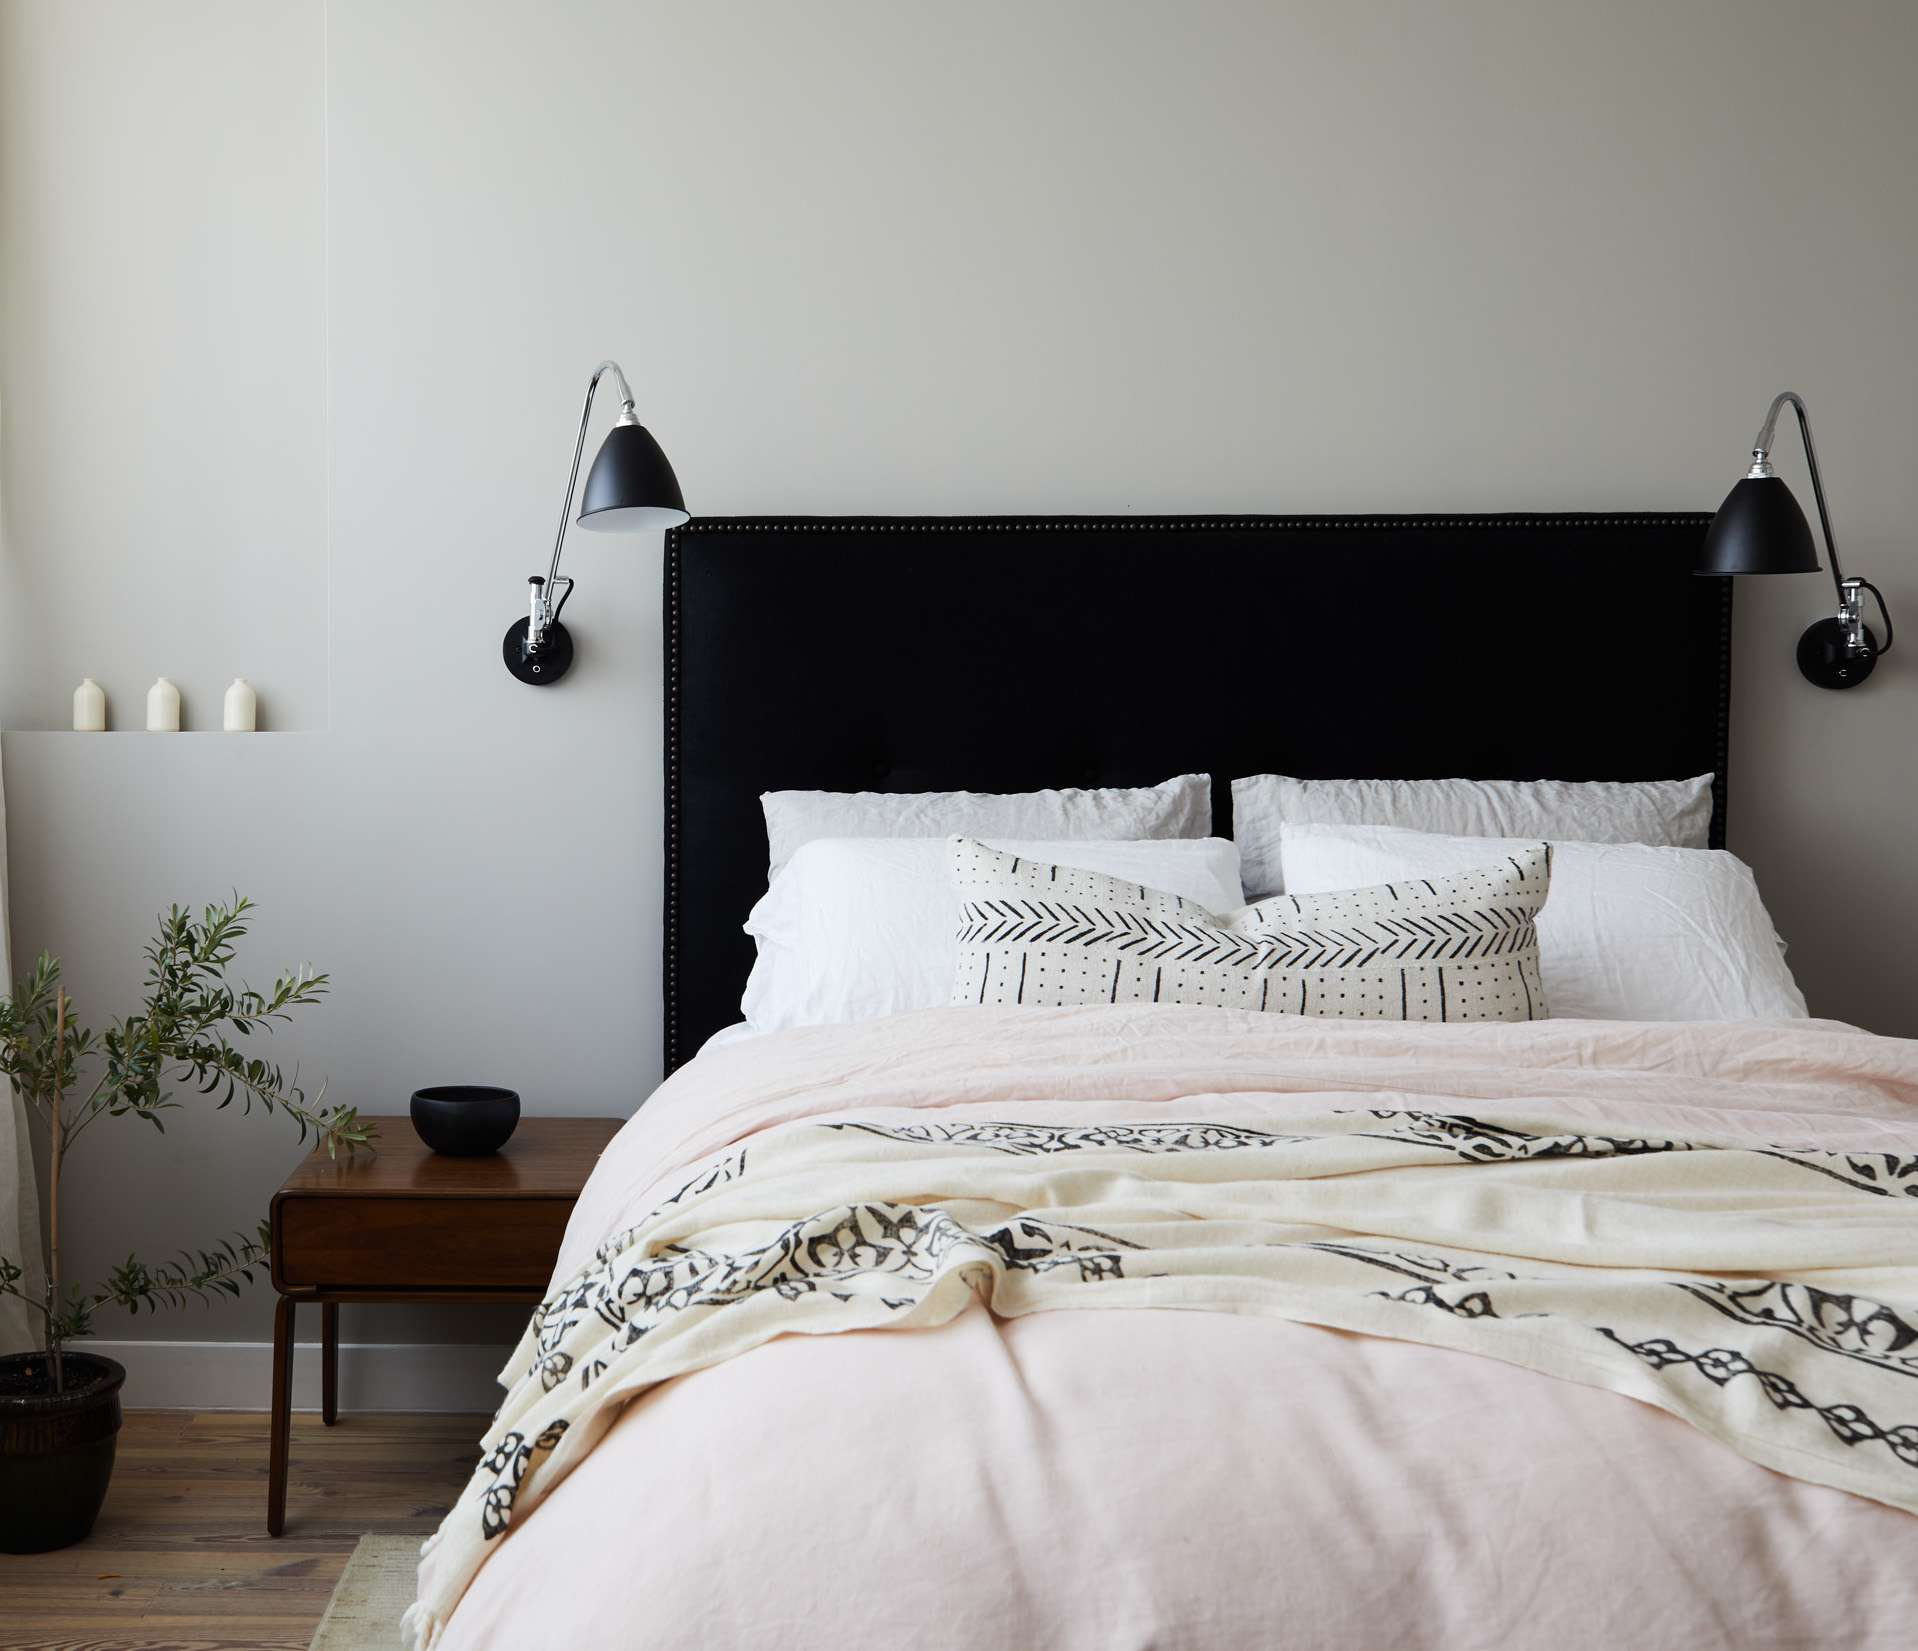 bedroom with contrasting colors, white and black and pale pink